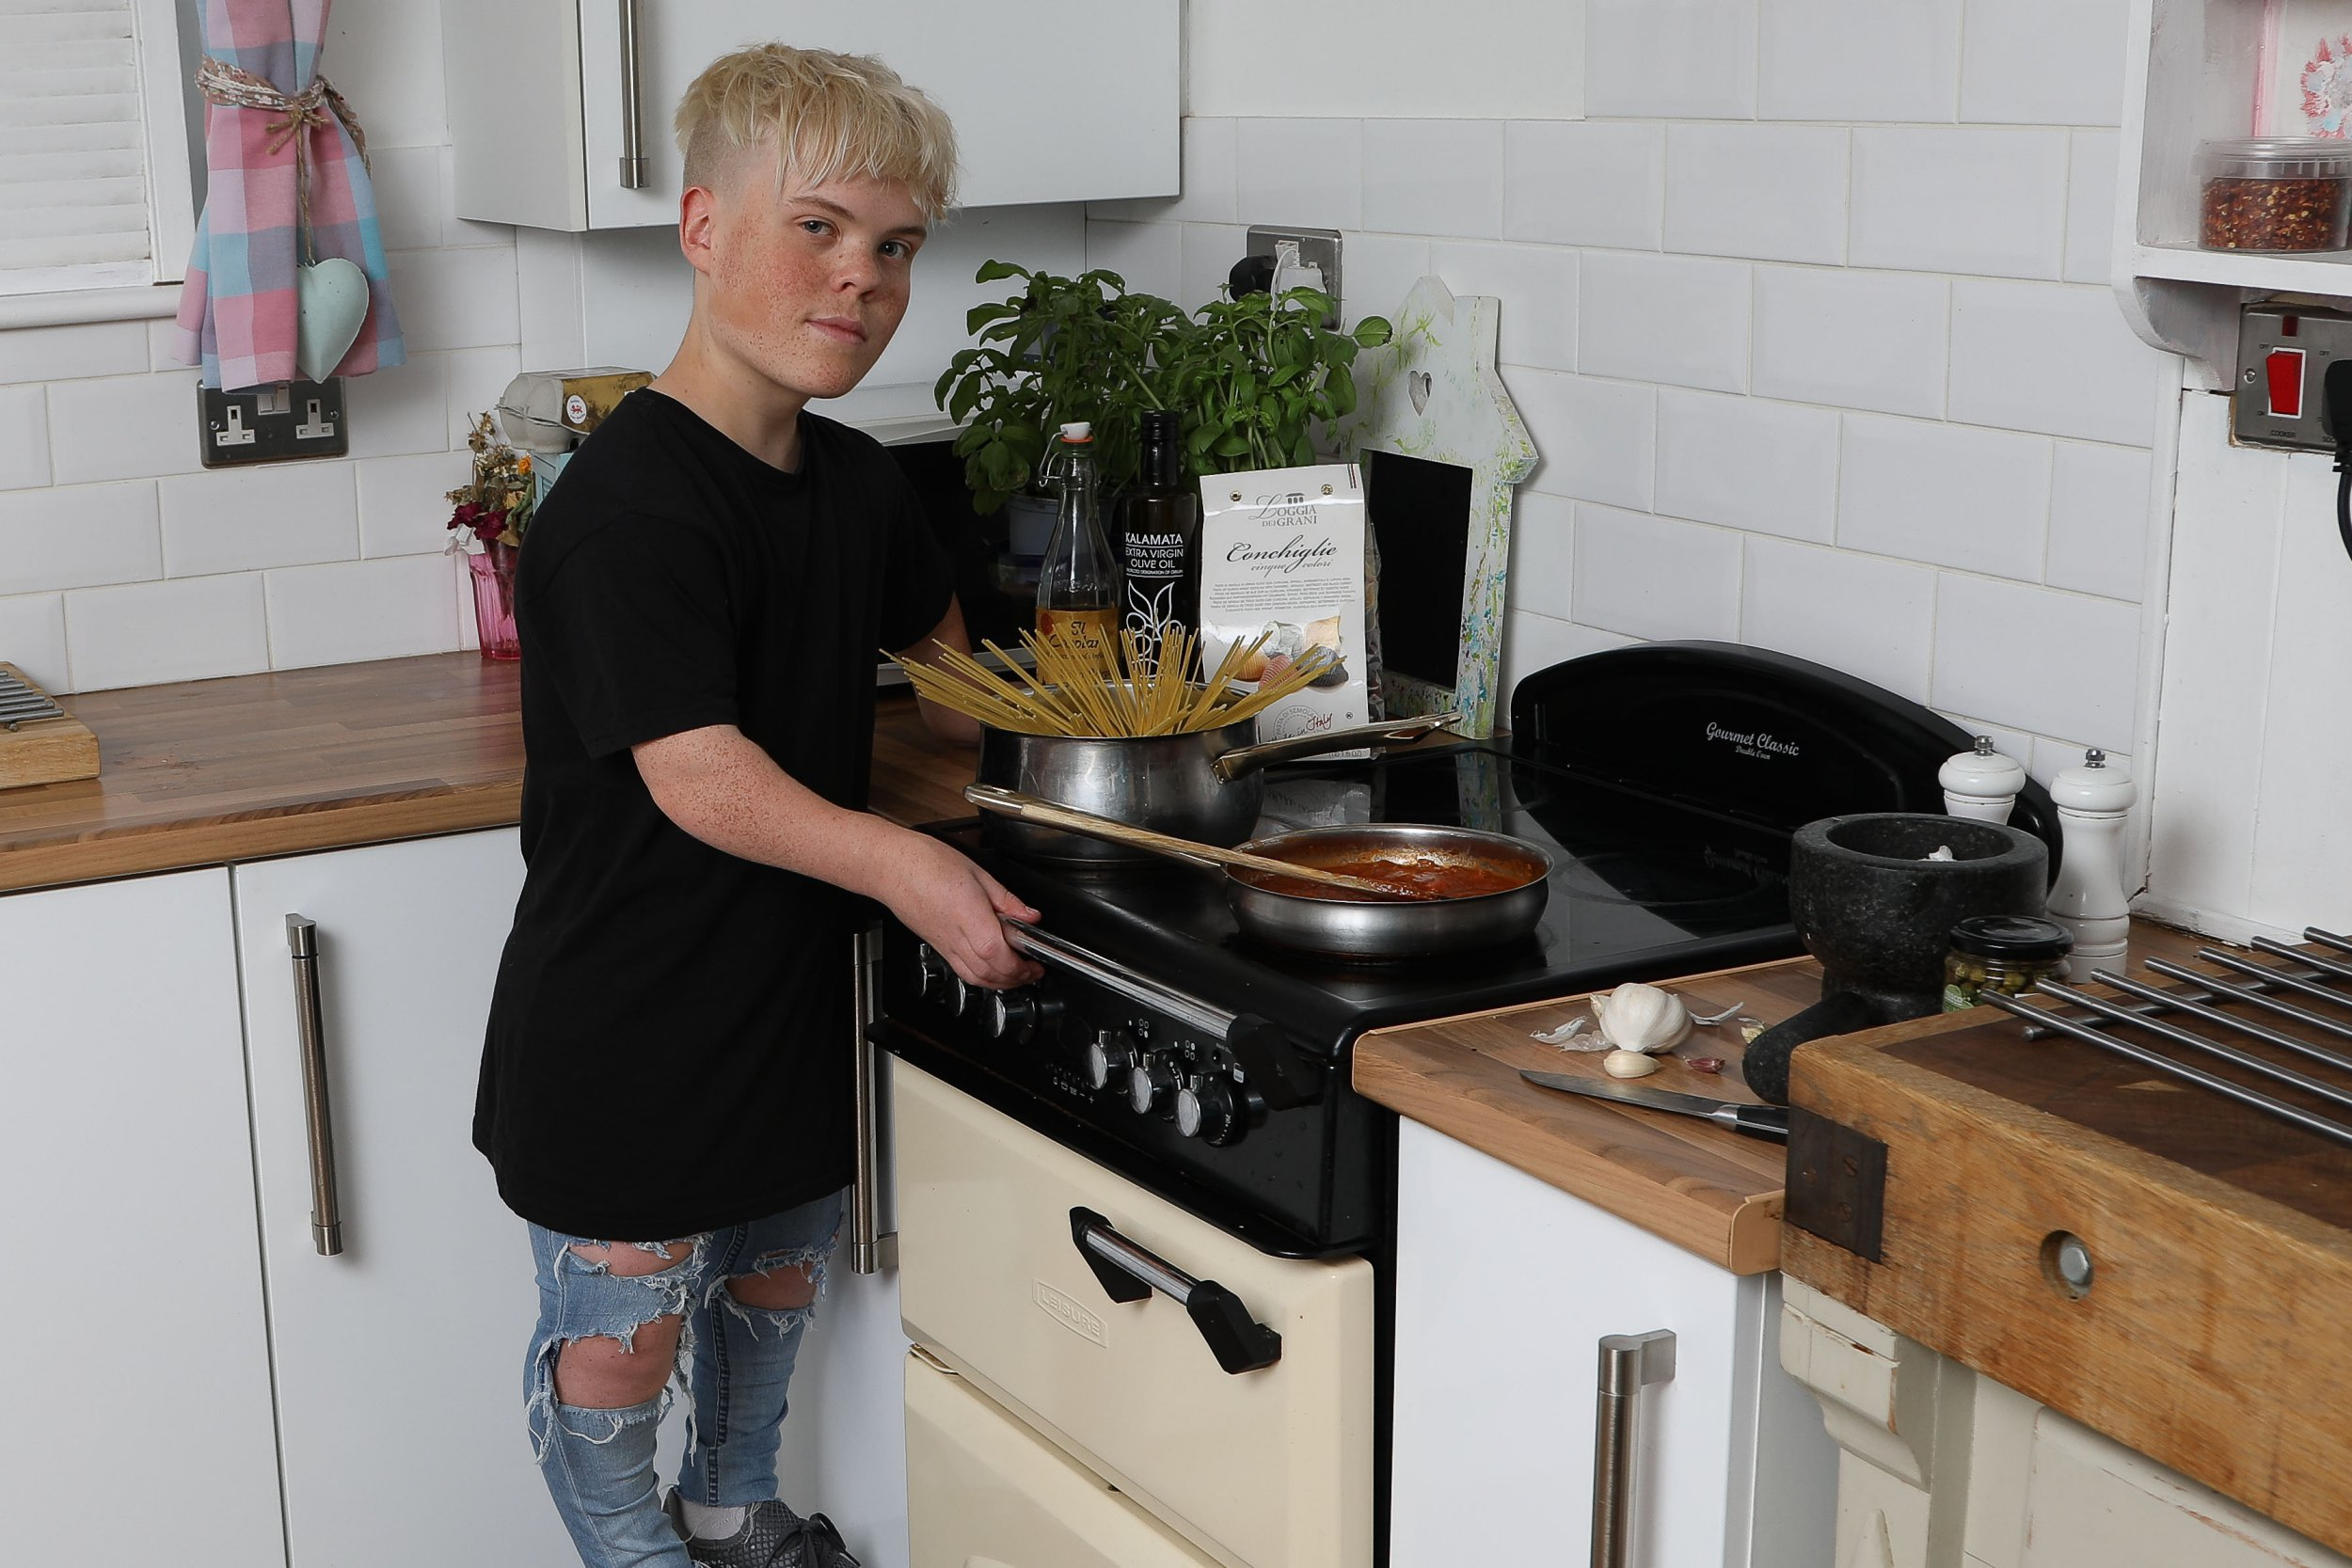 """Louie Makepeace from Worcester, Worcestershire. See News Team story NTIDWARF; A teenage dwarf claims he has been banned from going on a college cooking course because of his size - after being branded a HEALTH AND SAFETY risk. Louis Makepeace, 18, who stands at a just 3ft 10ins, says he is being discriminating against due to his size after being refused a place at Heart of Worcestershire College. He was originally offered a conditional place for the Hospitality and Catering course on August 16 but said they have now backtracked because he is too small for the kitchen. Louis claims college bosses branded him a """"safety risk"""" to the other 14 pupils and said he would cause a """"disruption"""" if he got under their feet."""